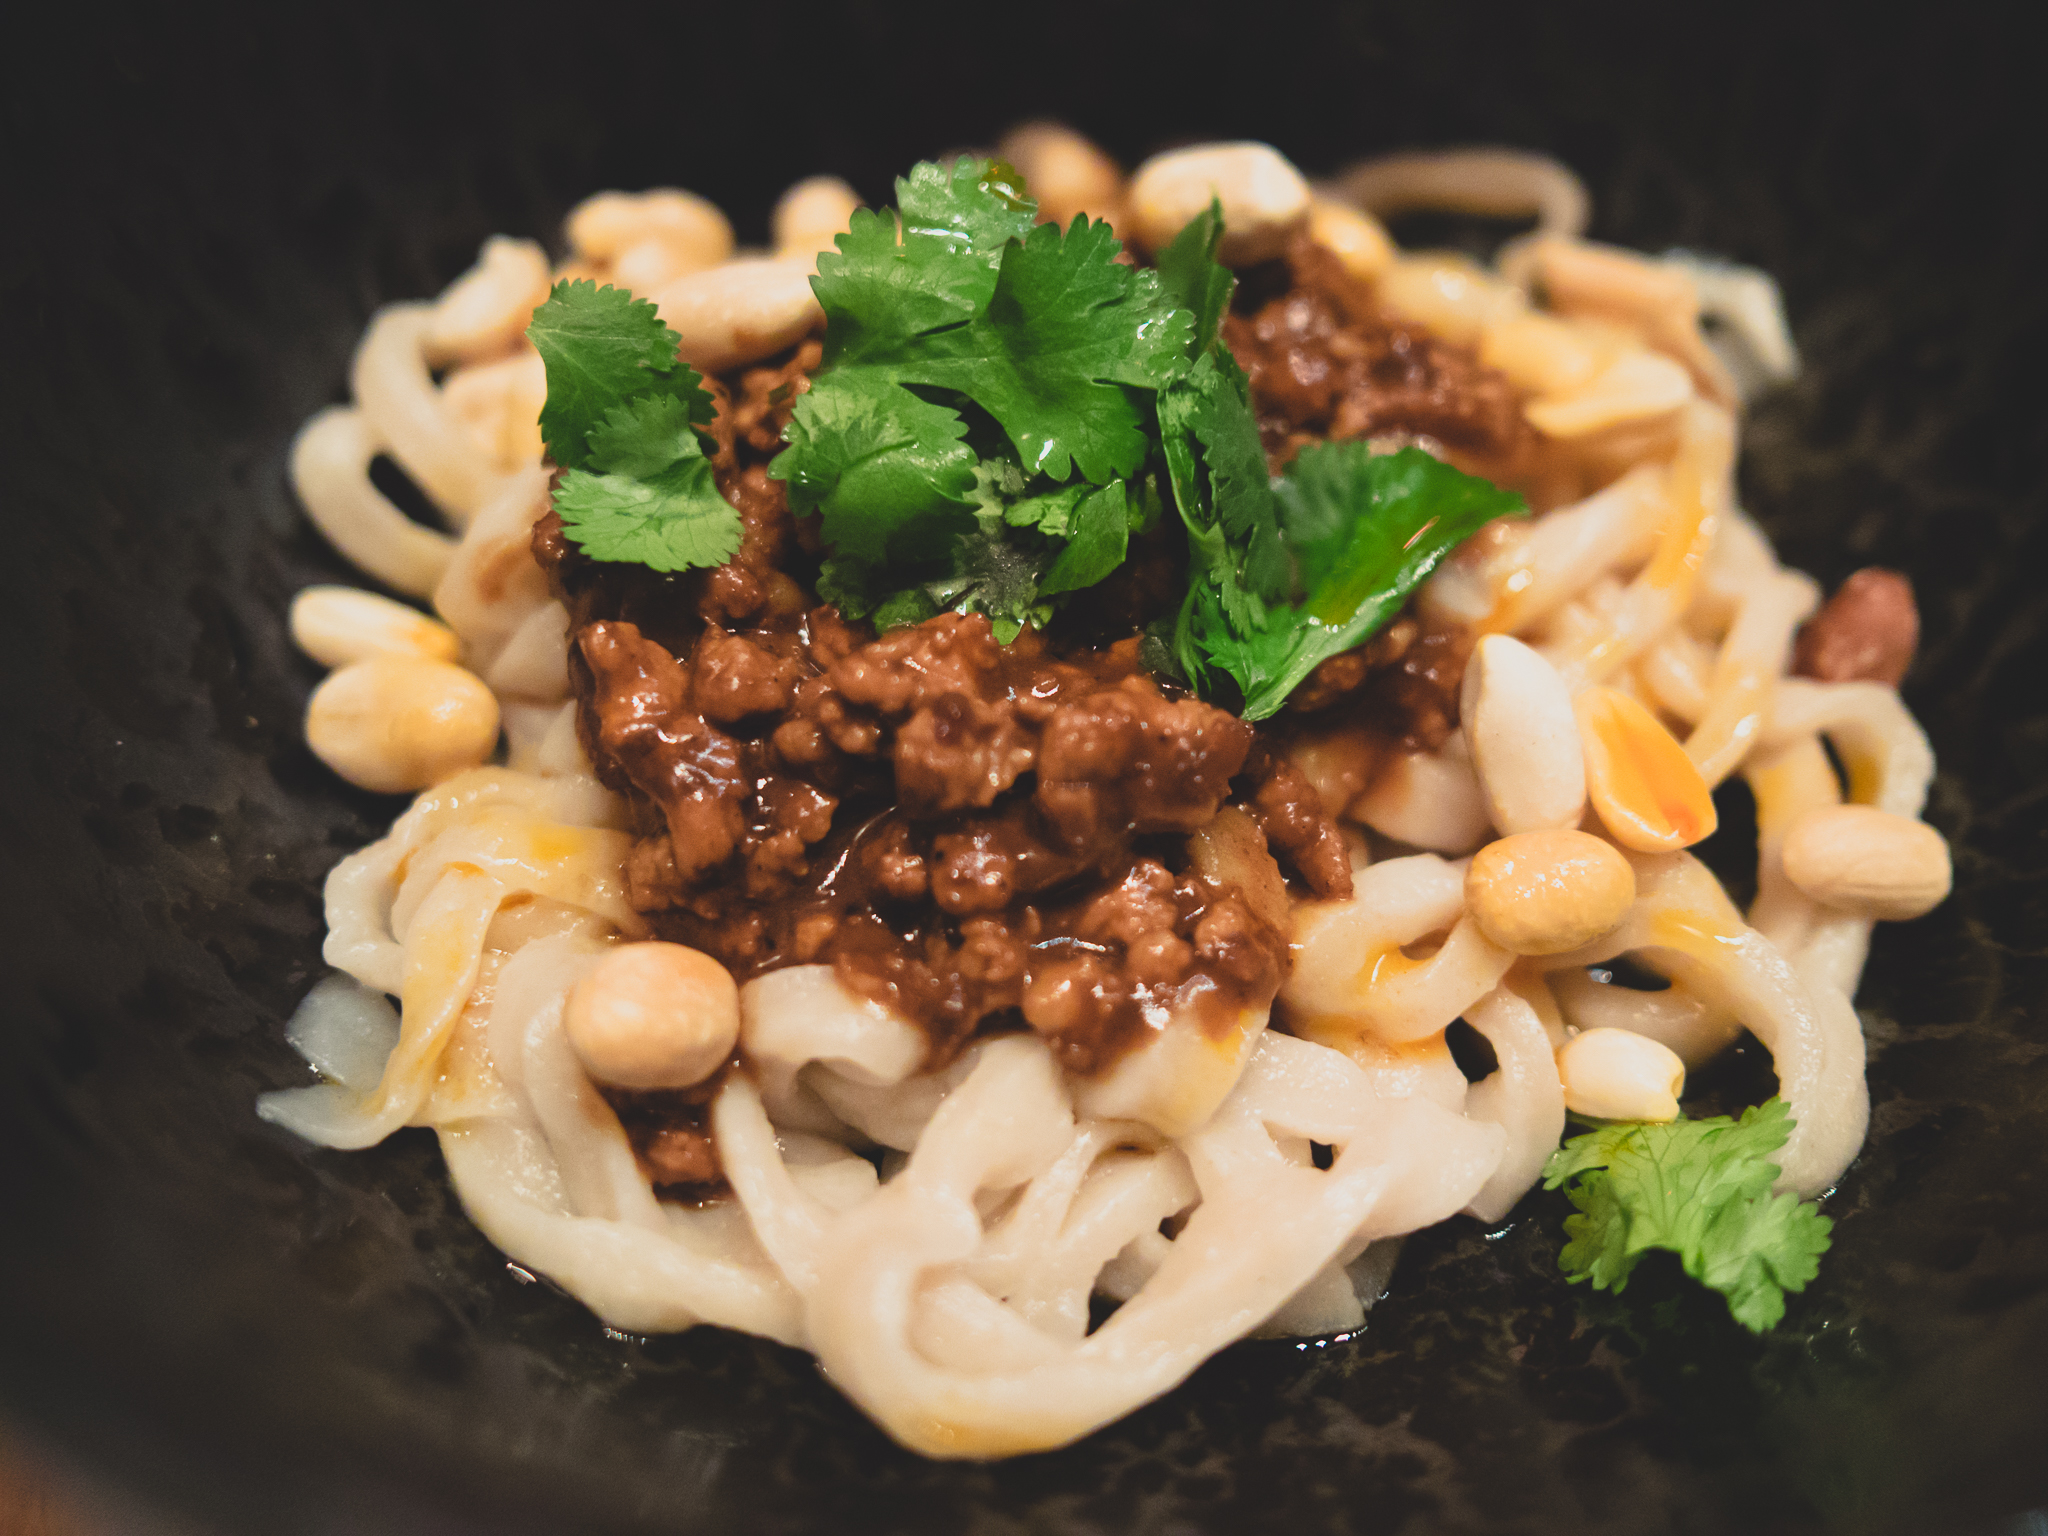 dan dan mian : hand-cut wheat noodles, spicy pork sauce and peanuts.